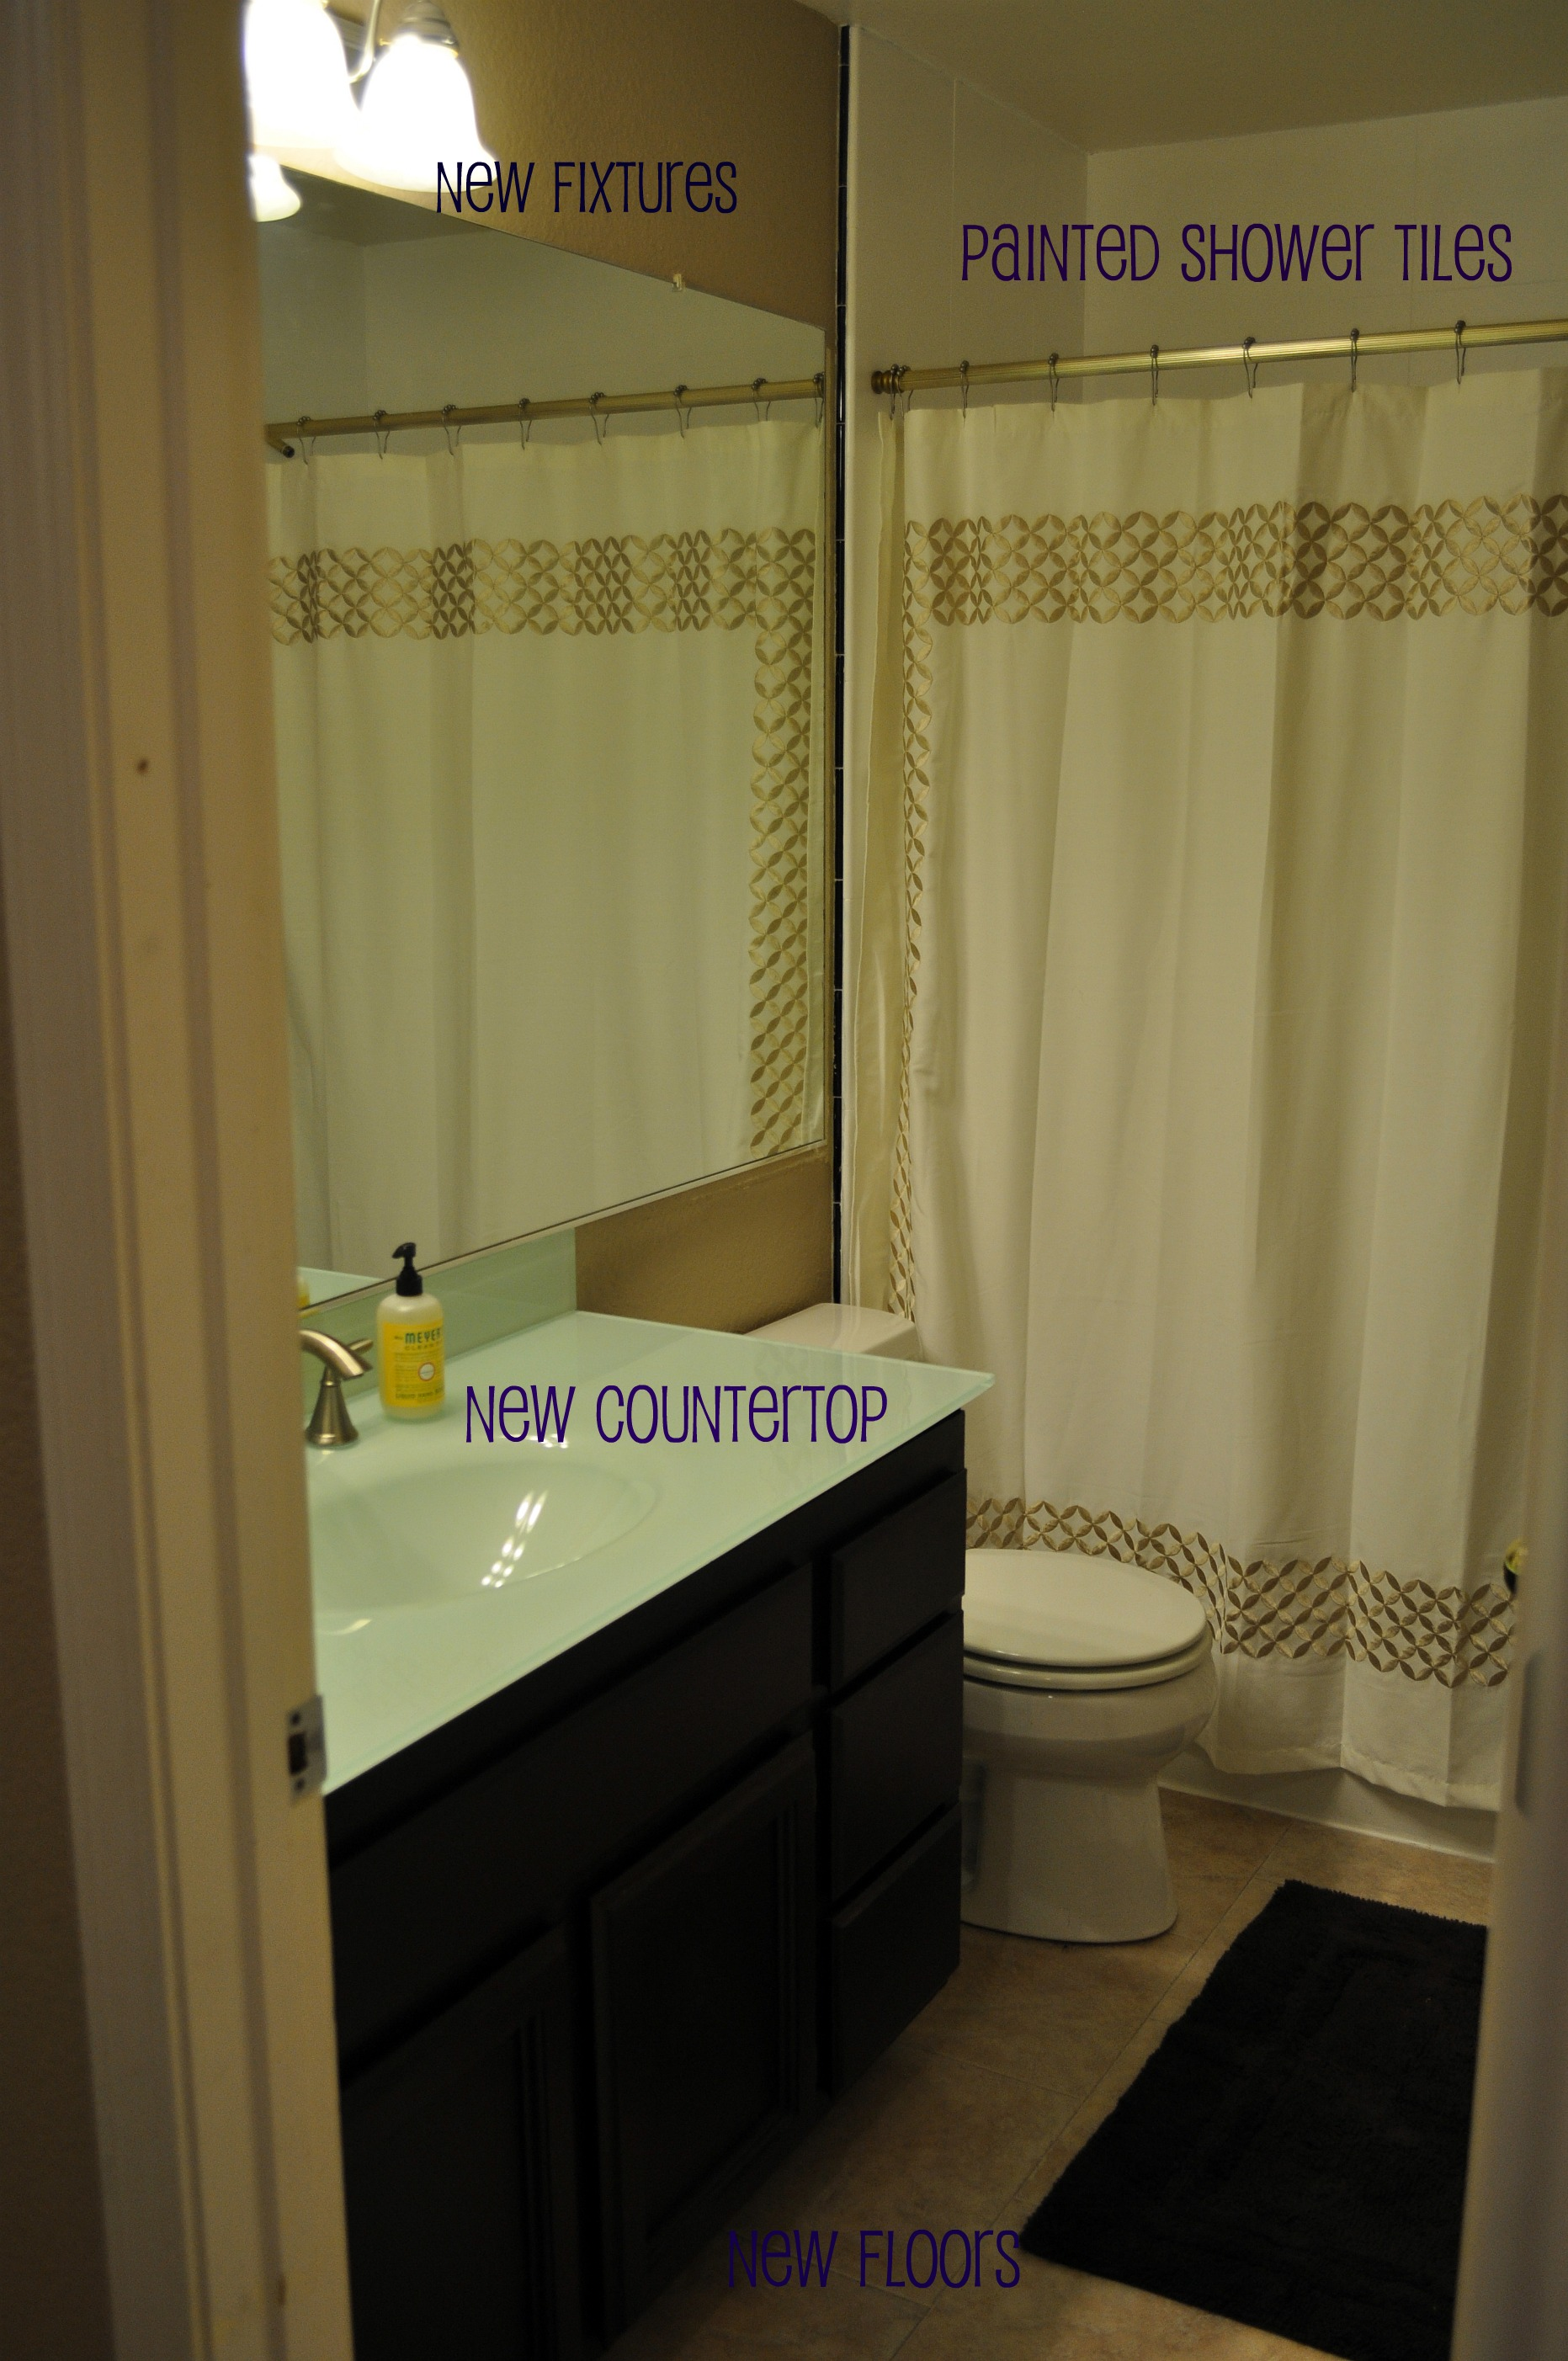 Home Depot Renew And Redo Our Completed Renovations My Frugal - Home depot bathroom remodel estimate